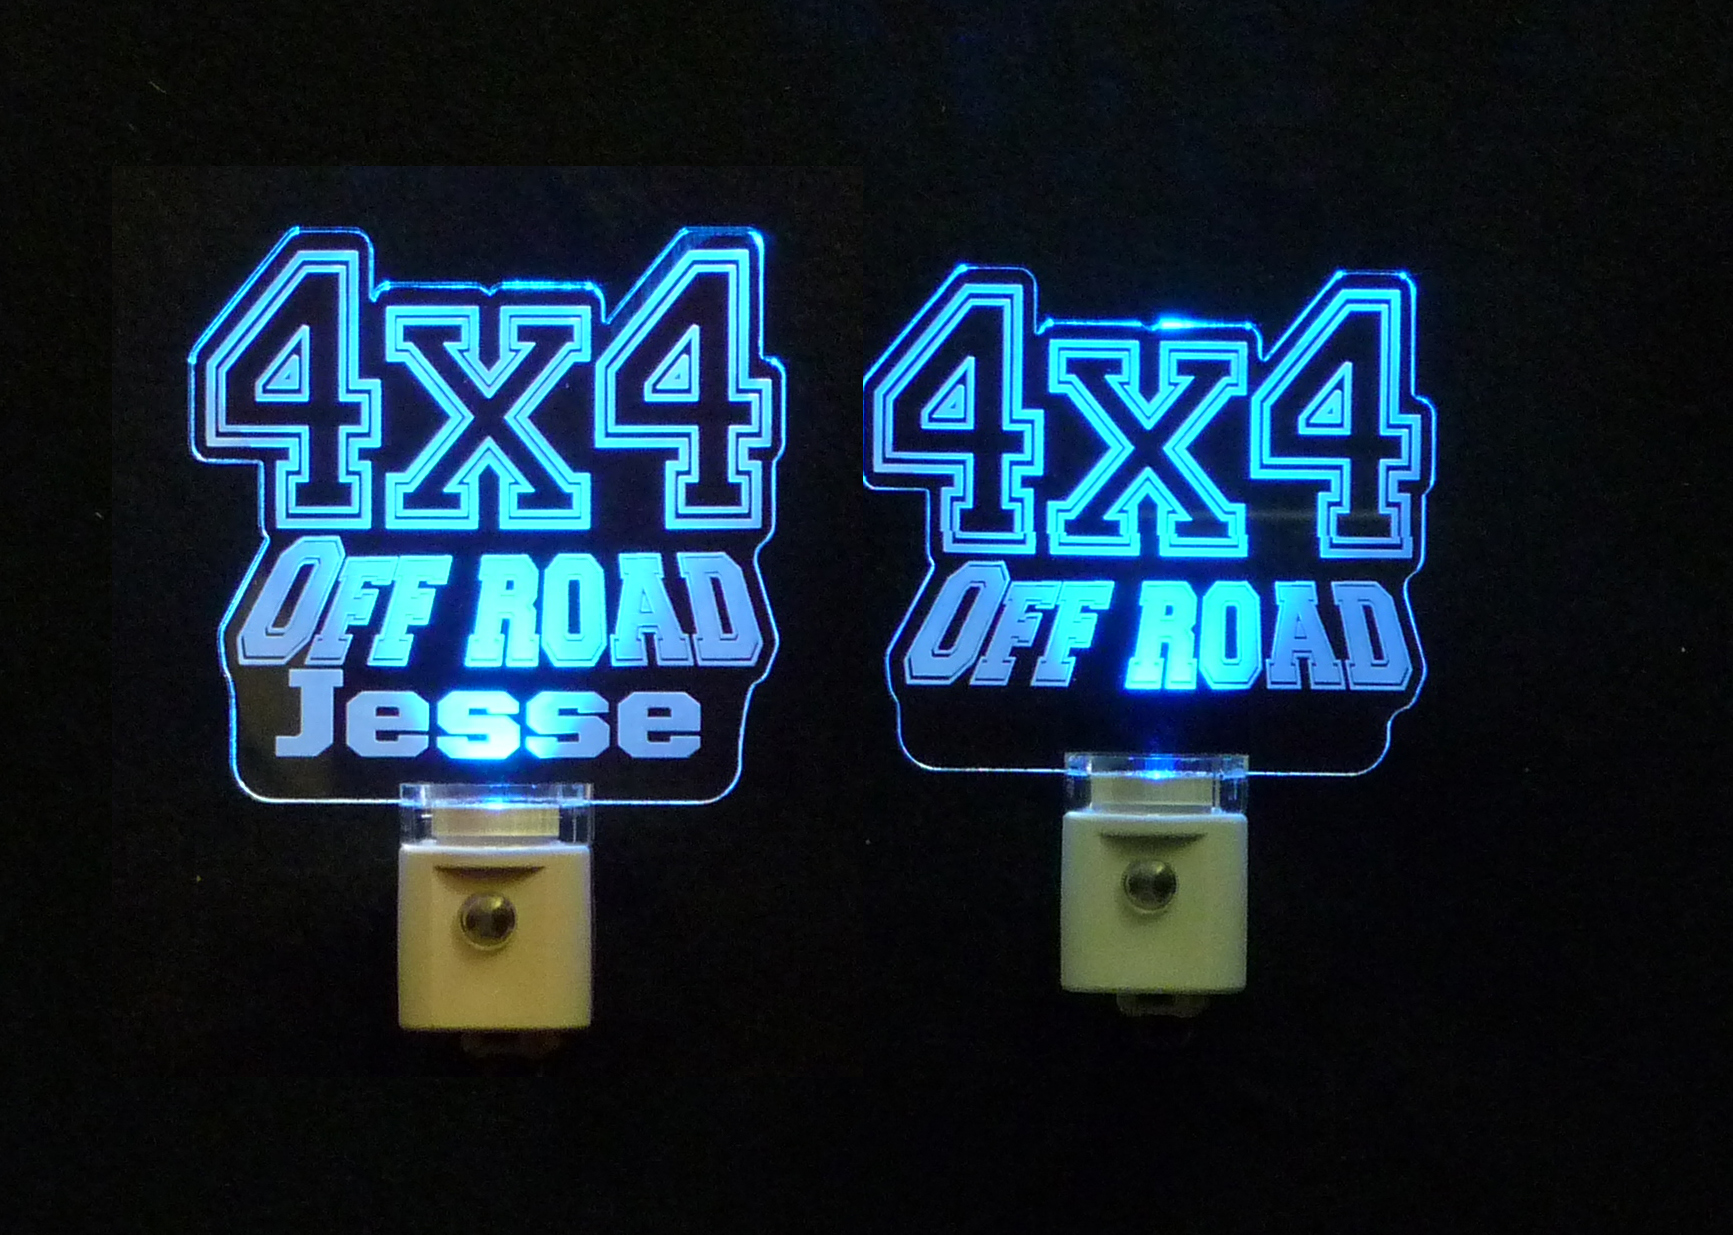 Personalized 4 x 4 Off Road LED Night Light